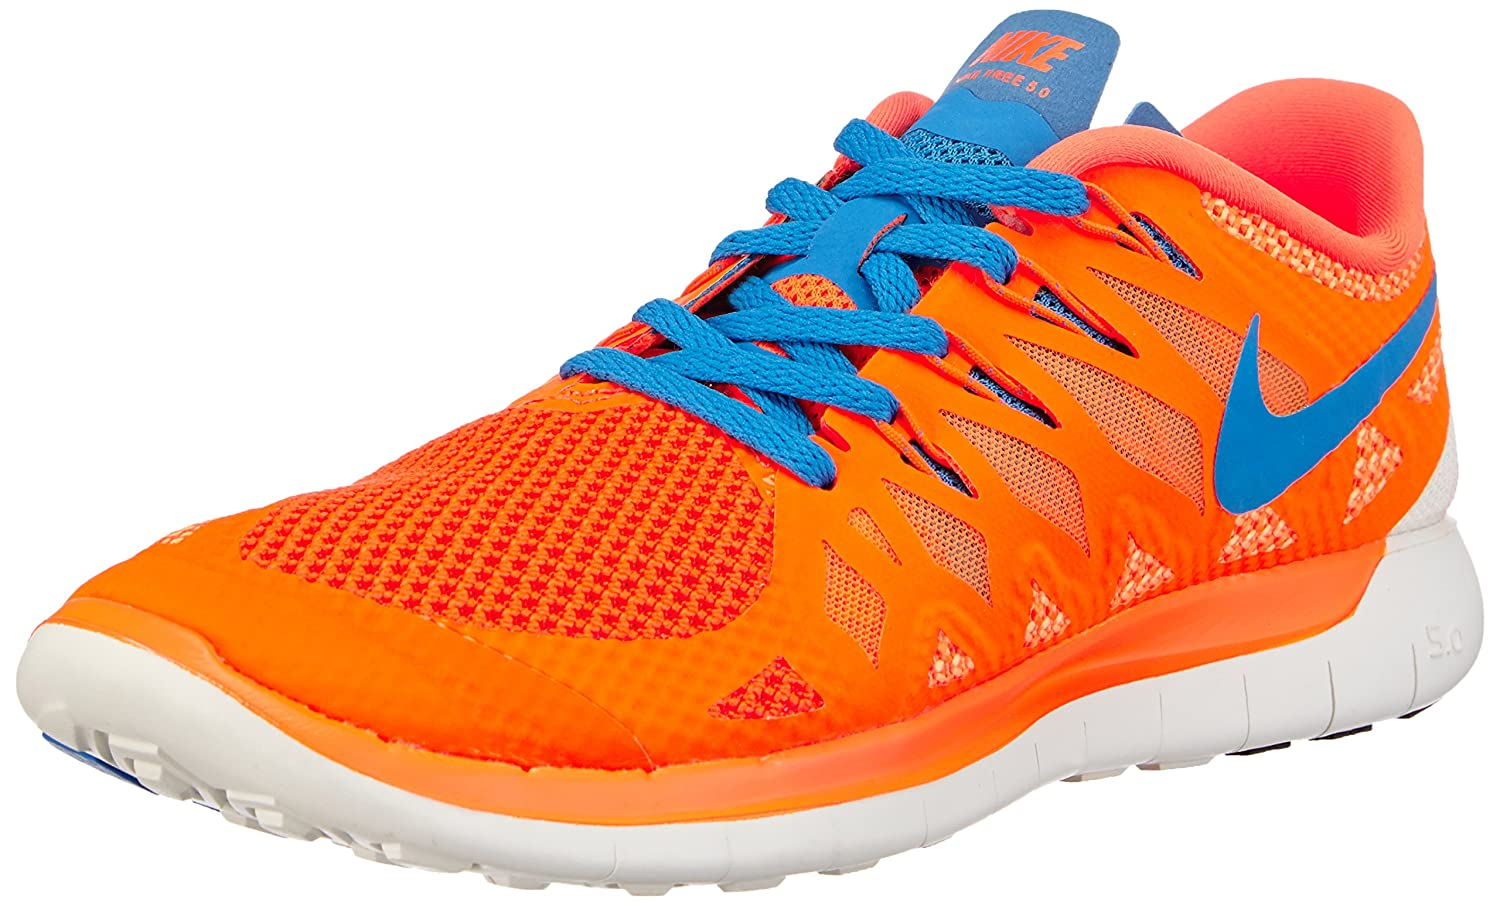 Nike Men's Free 5.0 Running Shoe B00IDKXY3E 8 D(M) US|Orange/Blue/White